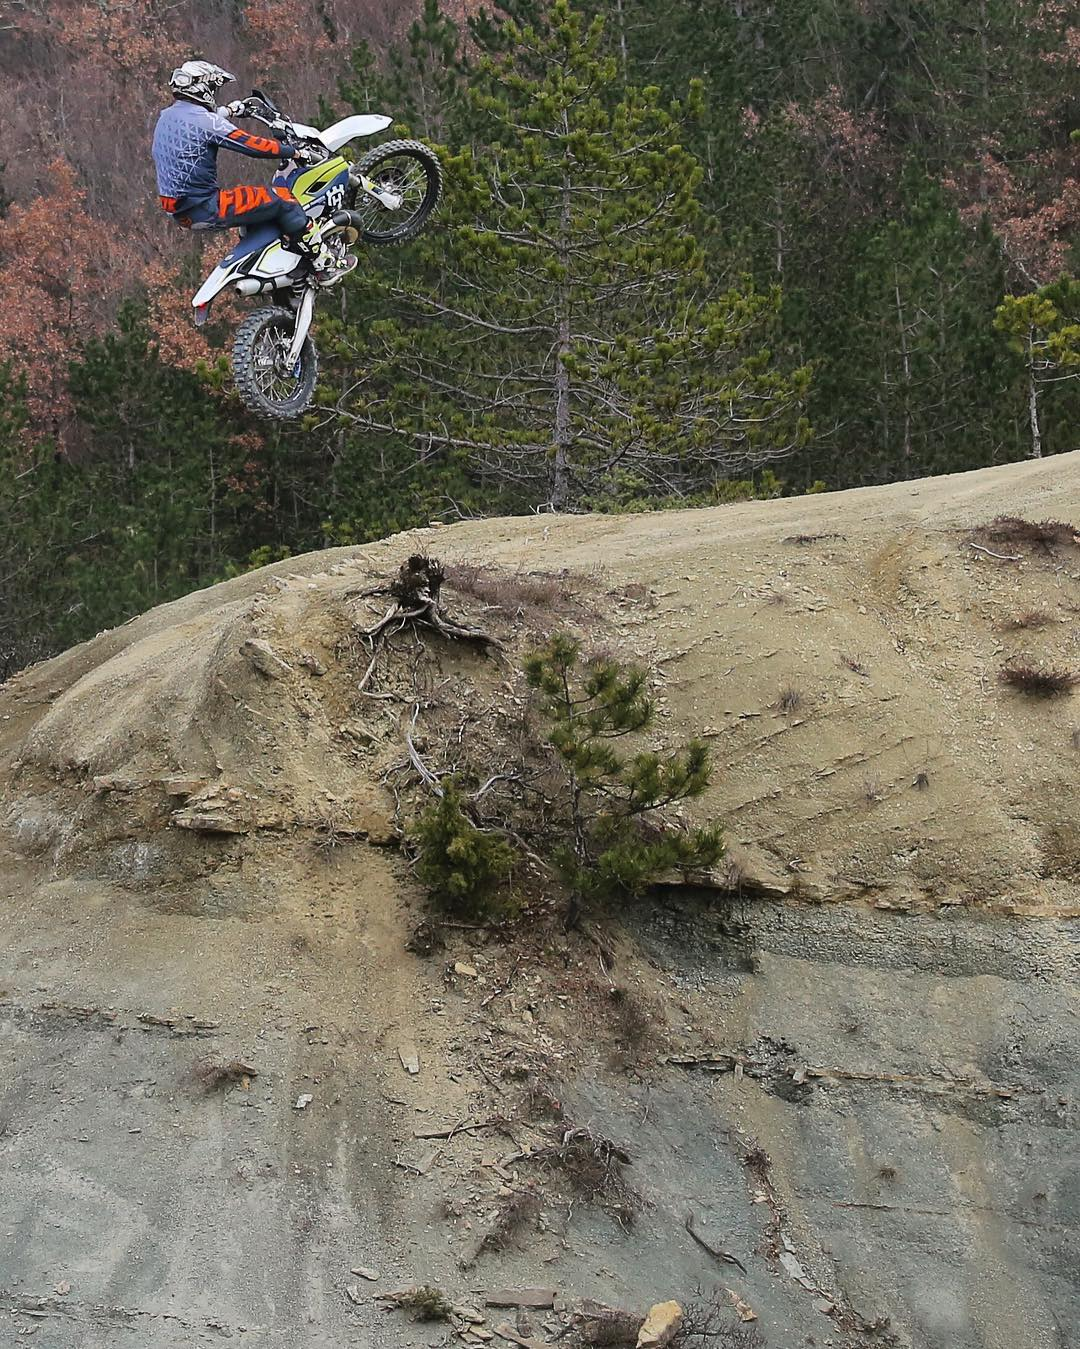 Kevin Gallas boosting off the top of a climb on his #Husqvarna #te300 ! @endurides #enduro #freeride #ride100percent